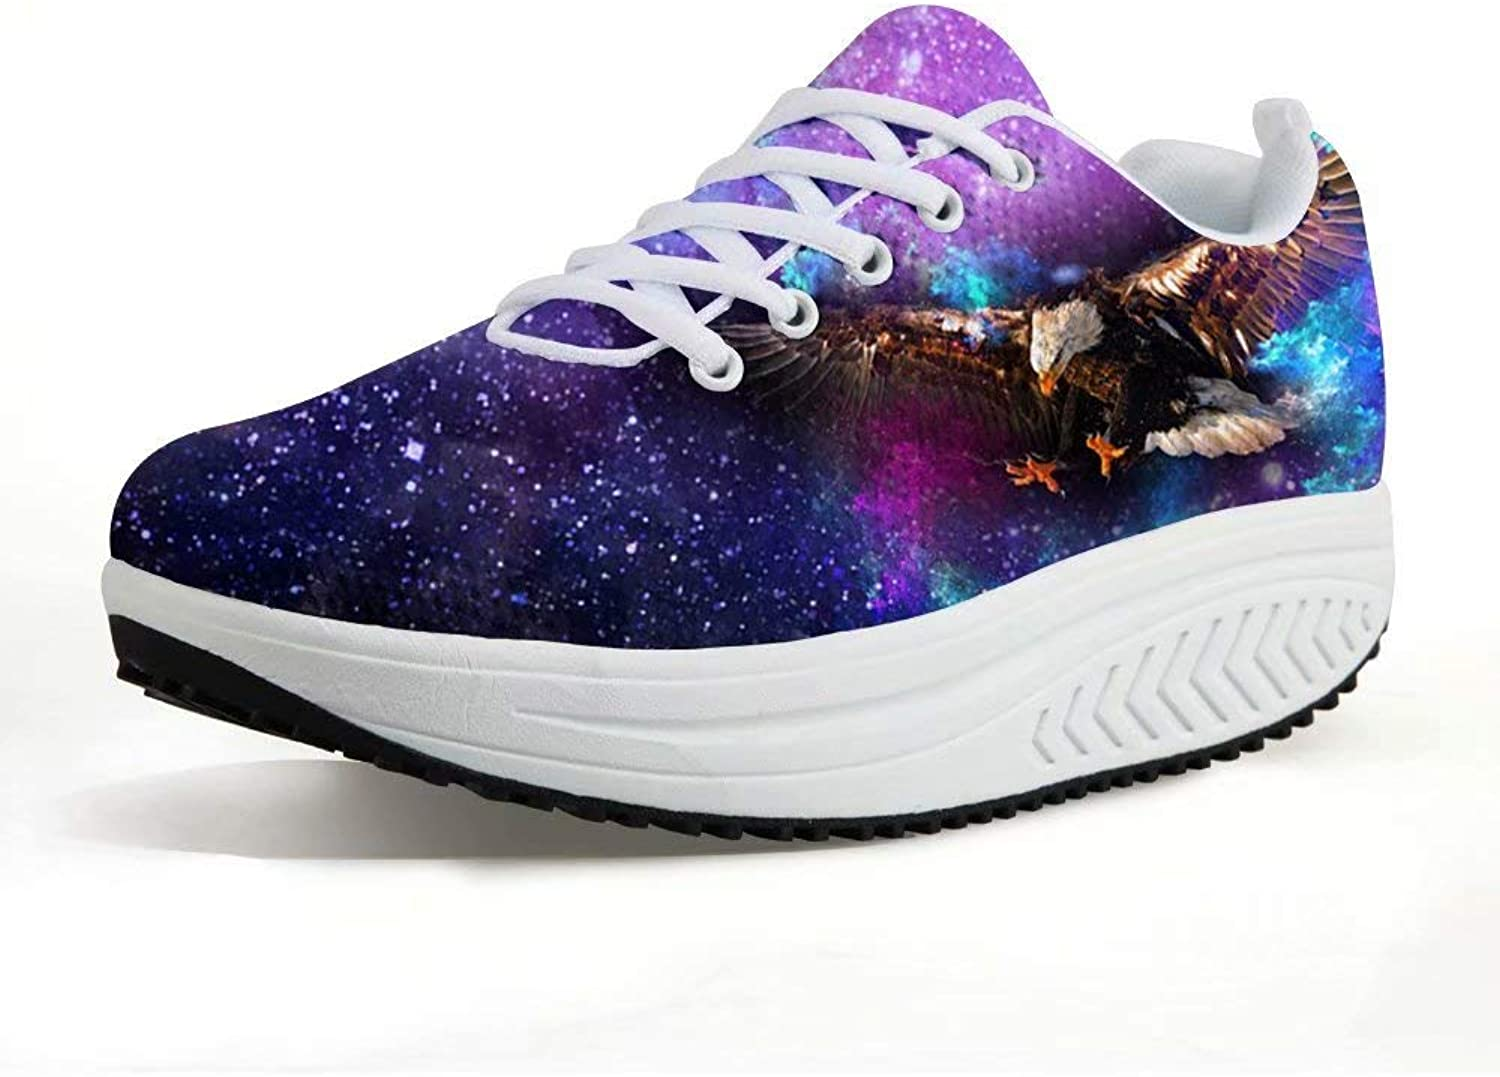 Advocator Galaxy Animal Printed Fitness Walking Sneaker Casual Wedges Platform shoes